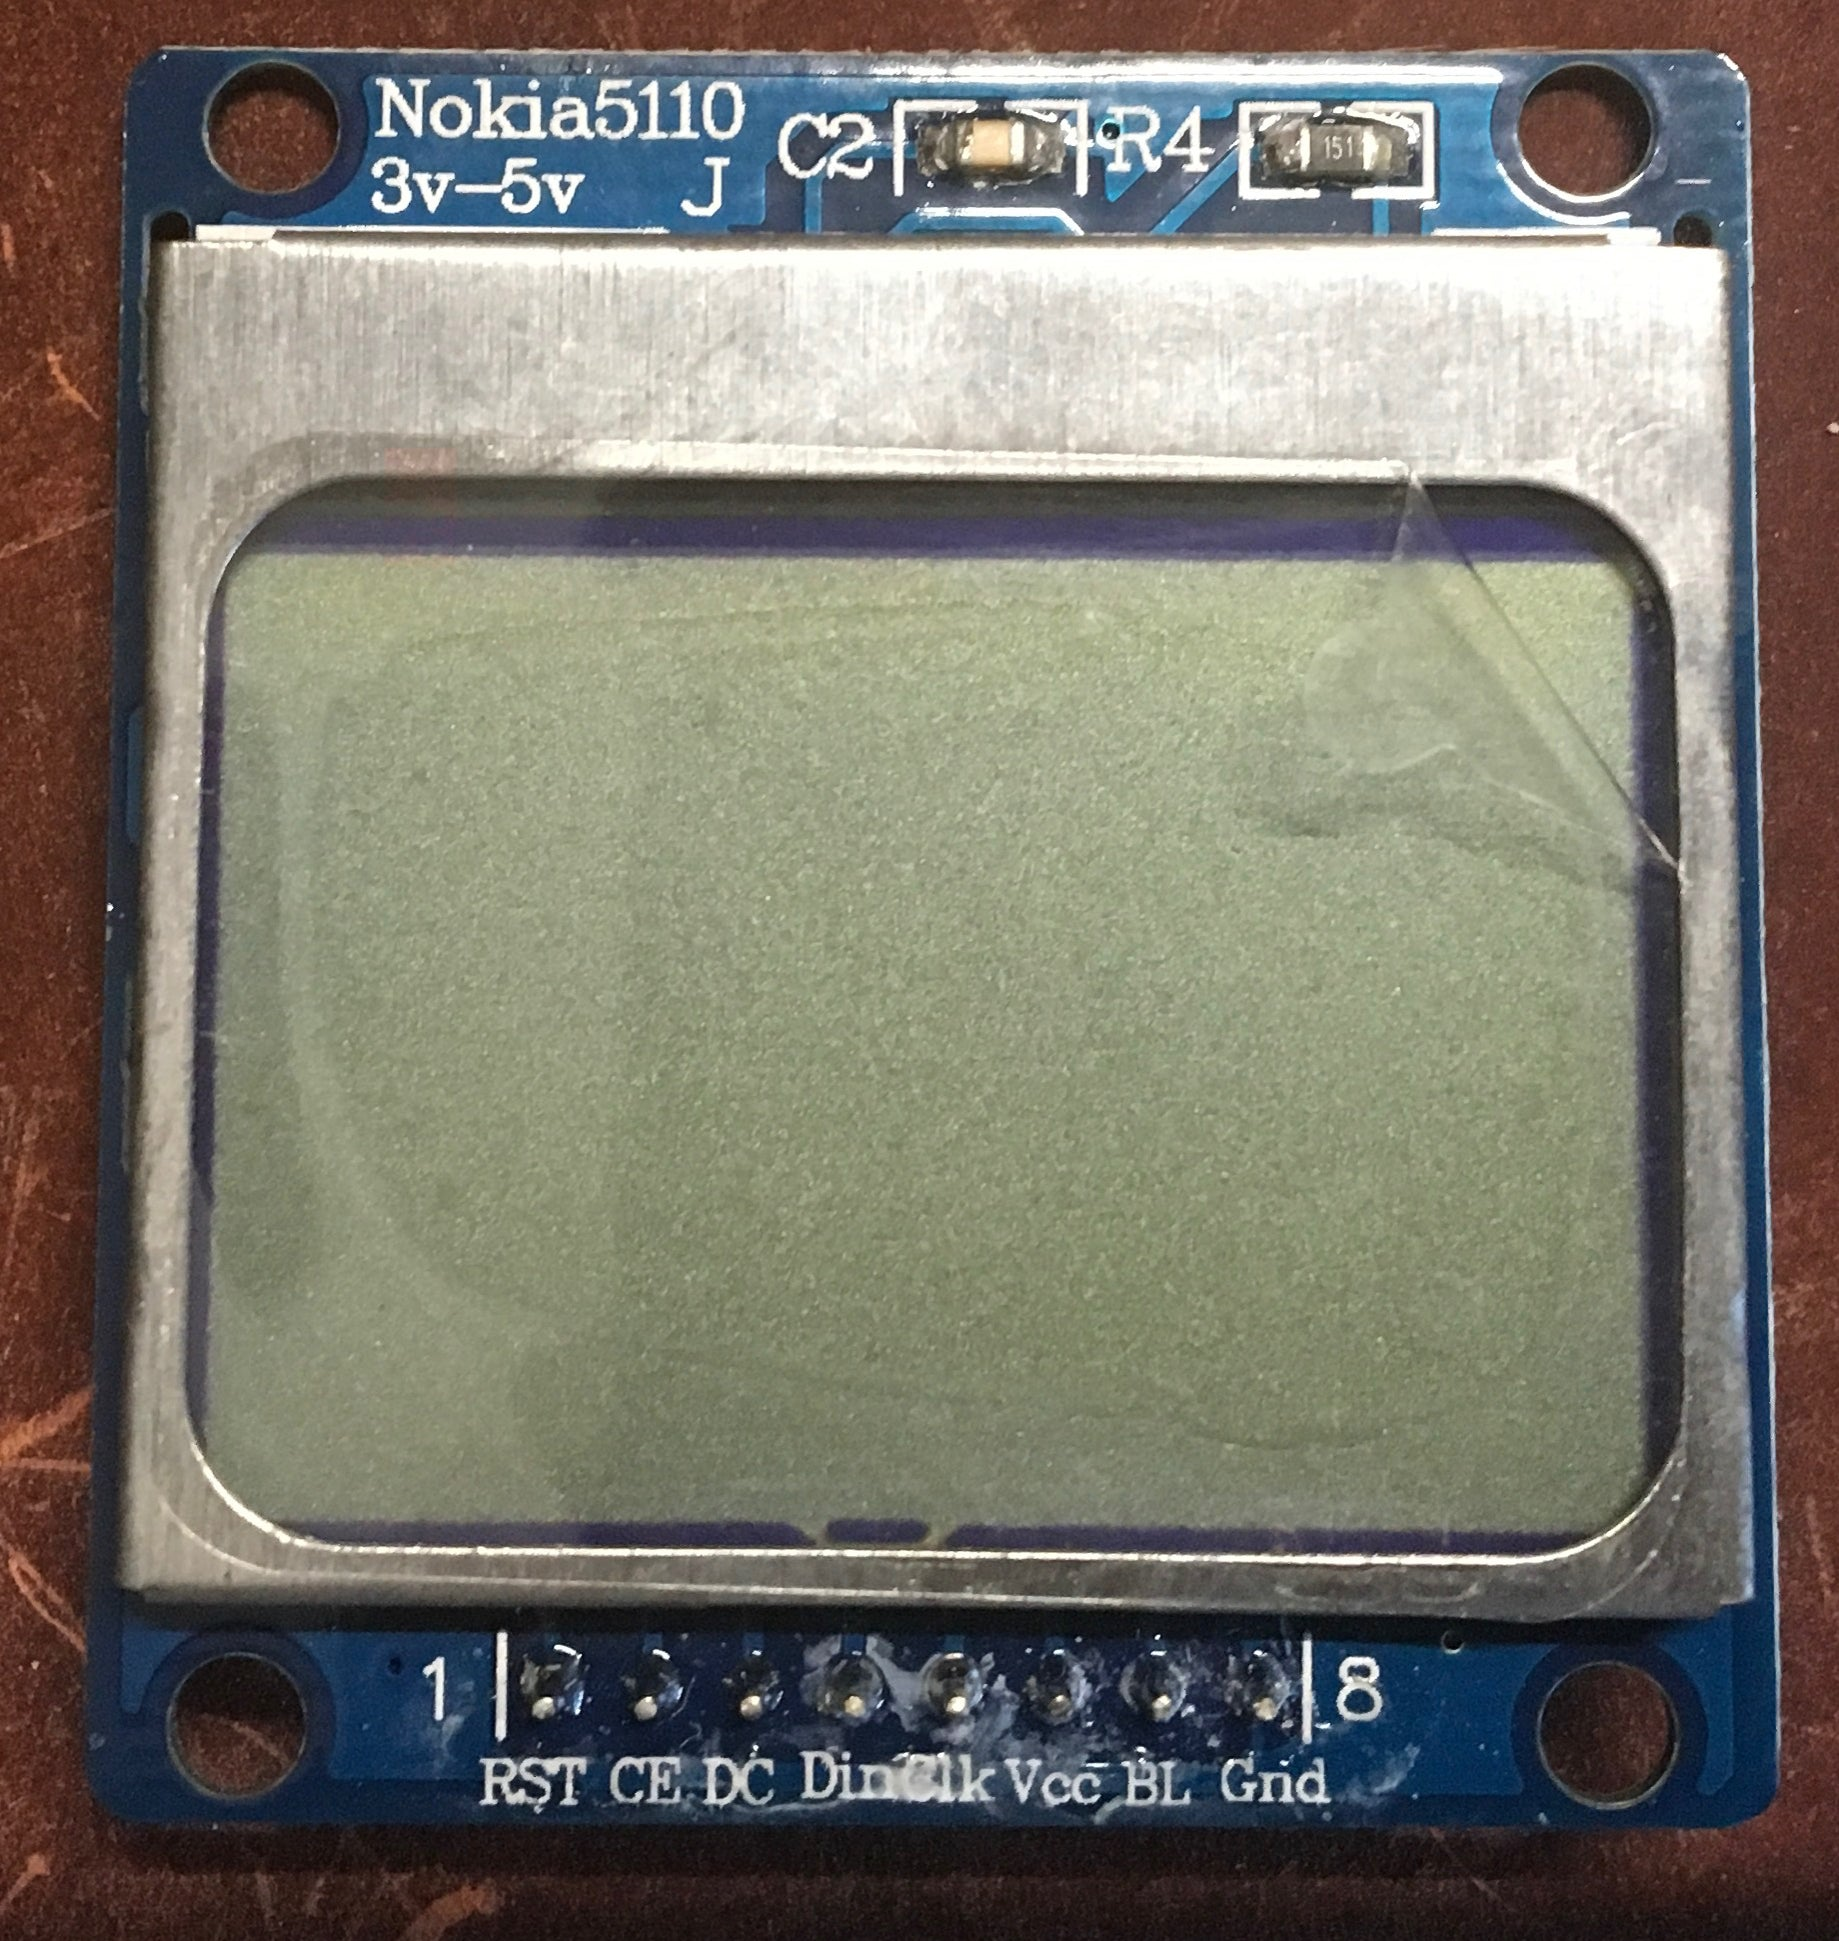 Nokia 5110 LCD 84x48 w PCD8544 3.3v/5v w soldered Headers for Arduino, Raspberry, nodeMCU - Server On The Move